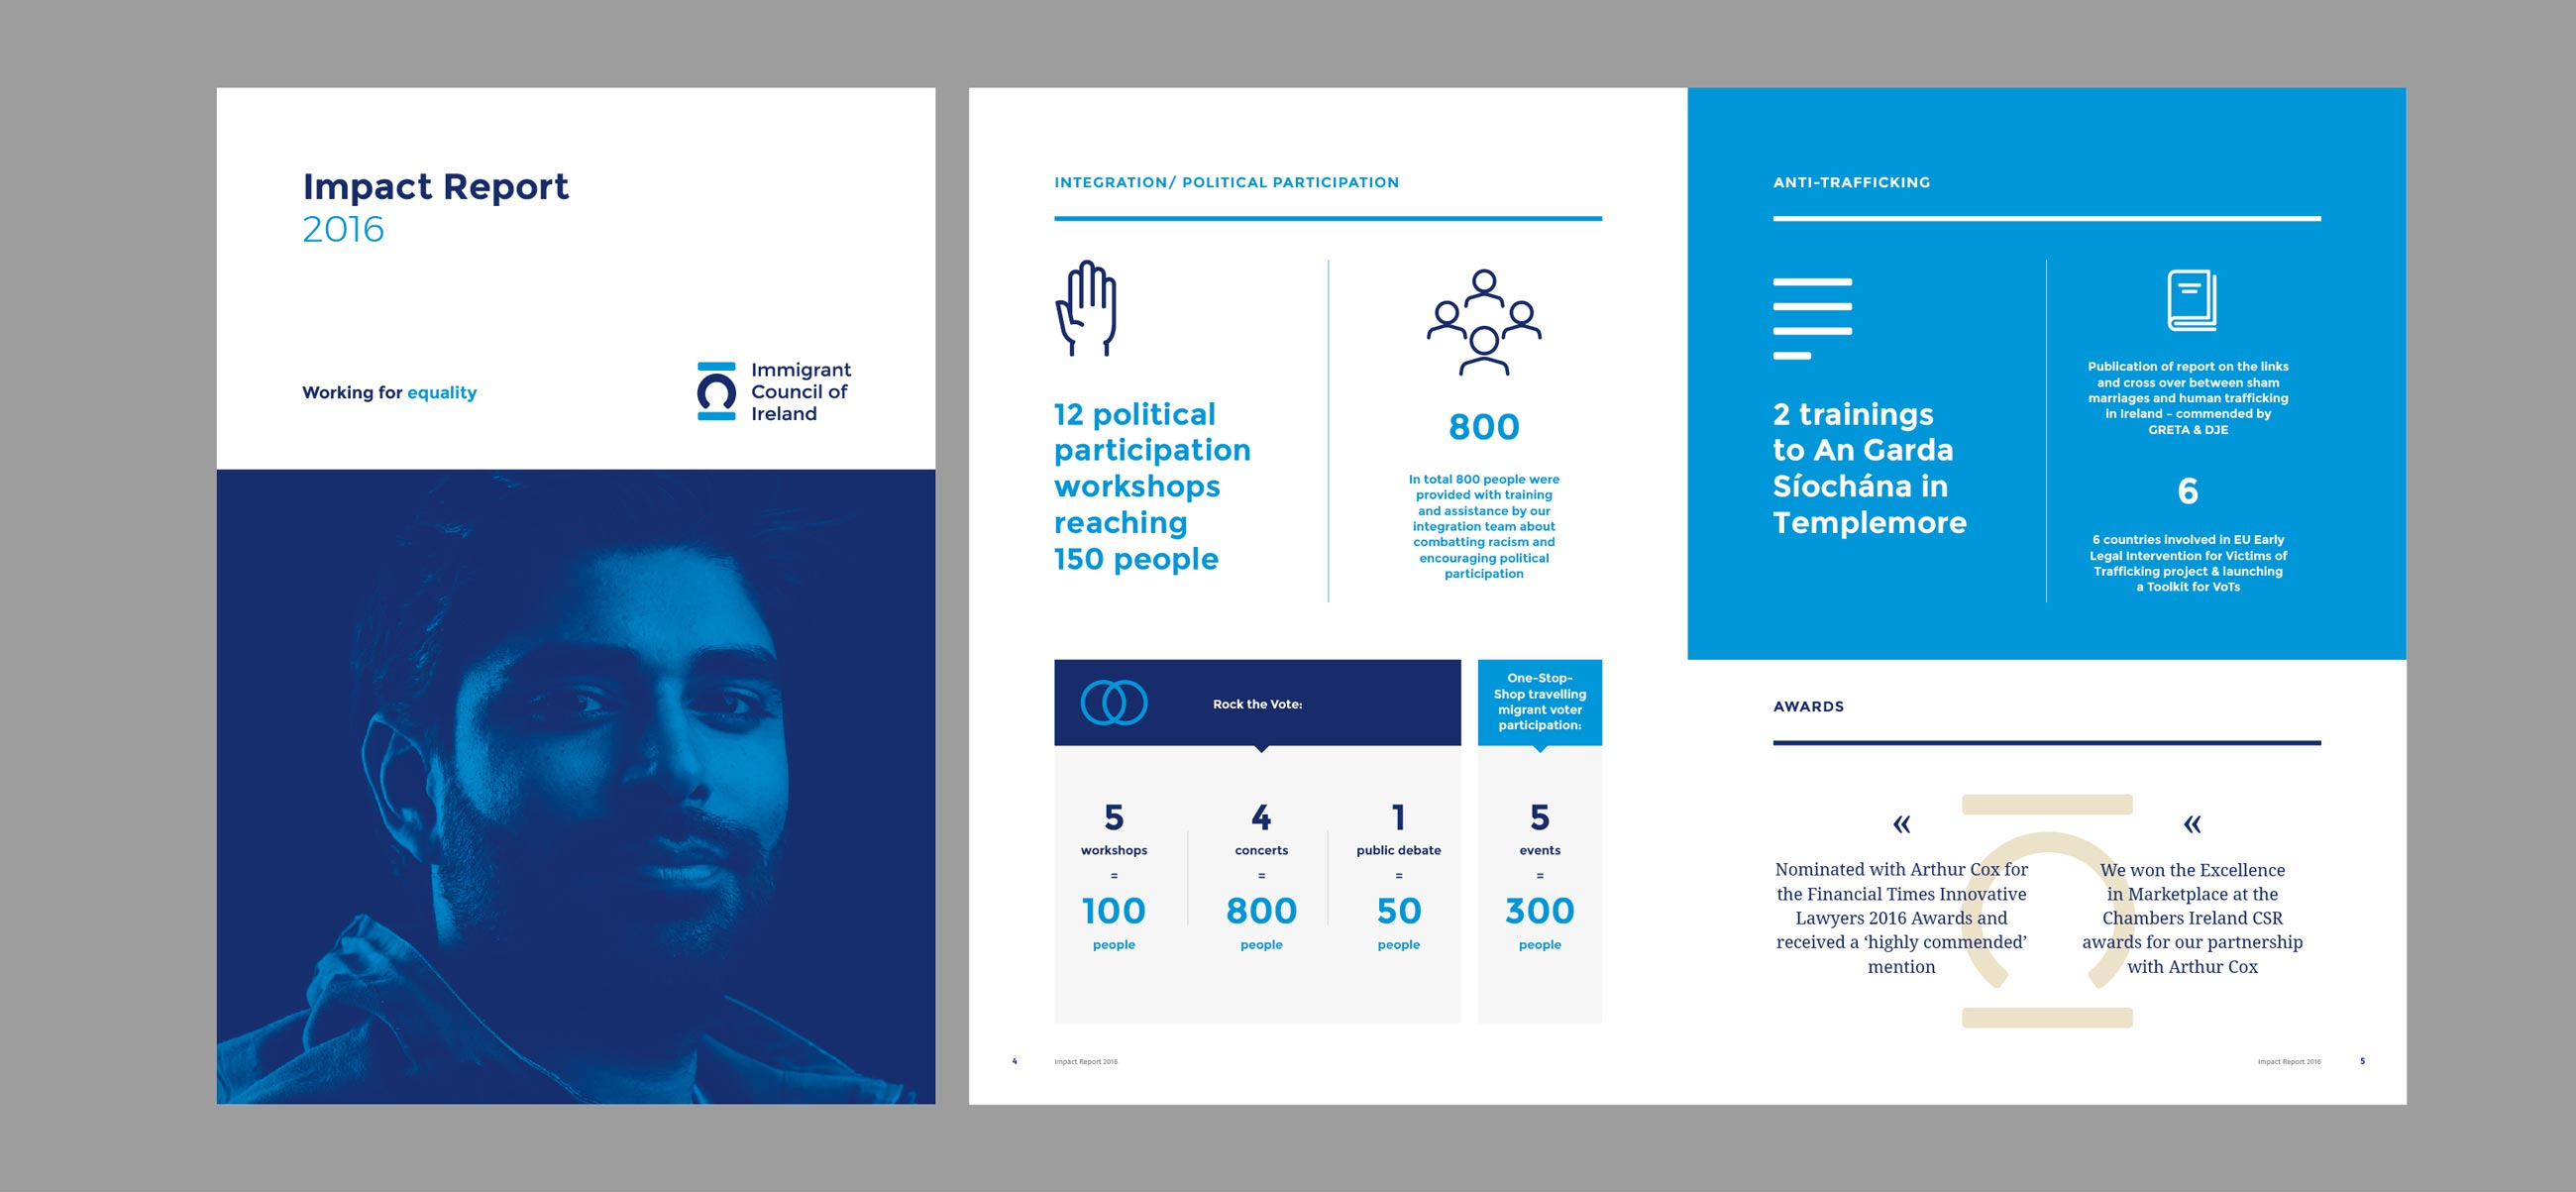 Immigrant Council of Ireland Editorial graphic design of the 2016 Impact Report